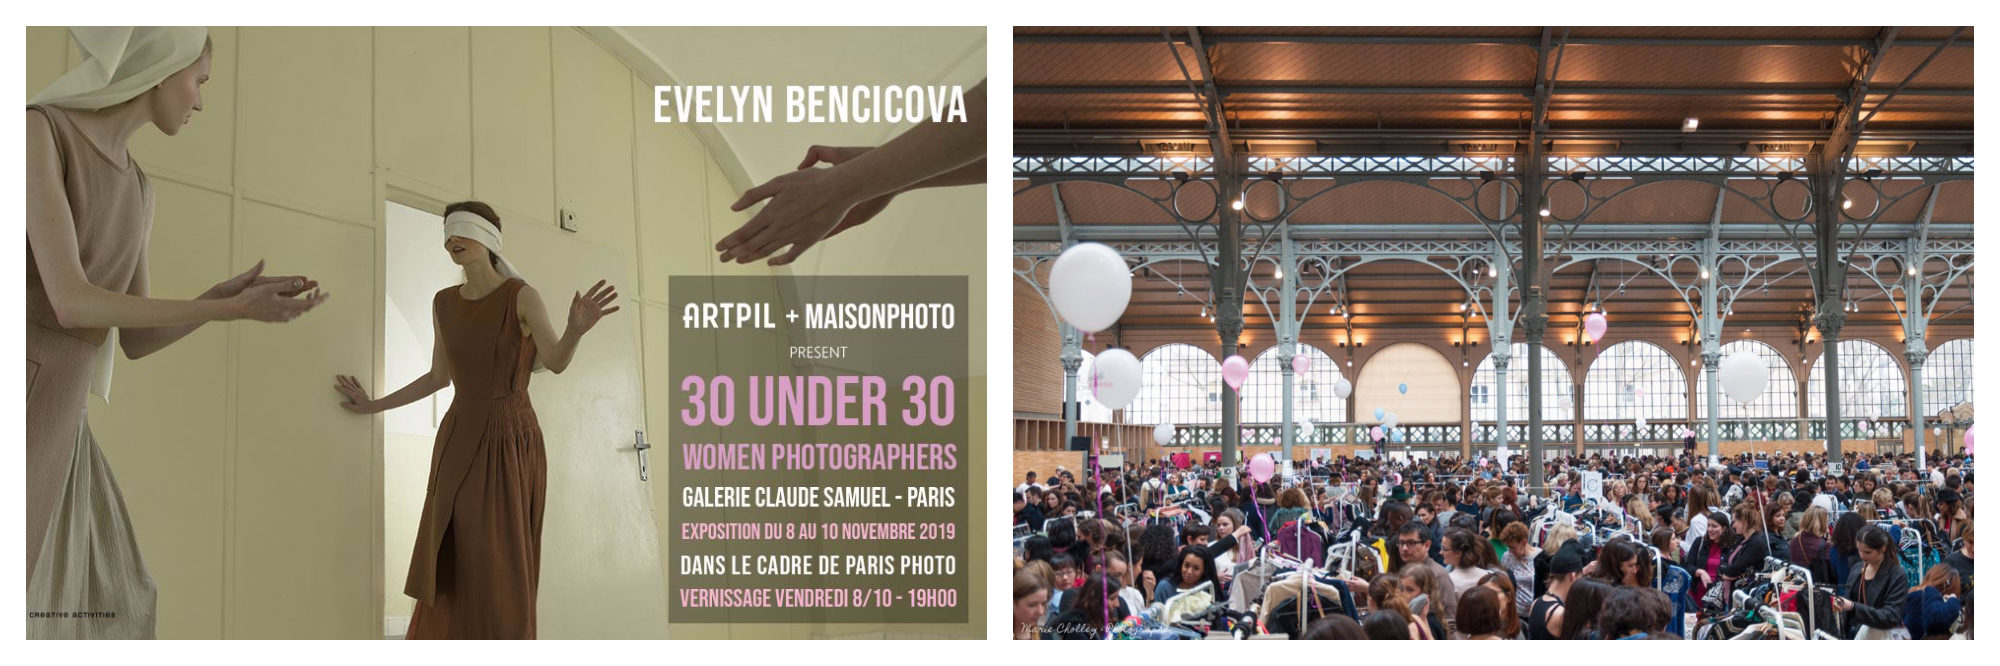 A poster for a photography event in Paris this November (left) and inside a fashion flea market at the Carreau du Temple in the Marais (right).